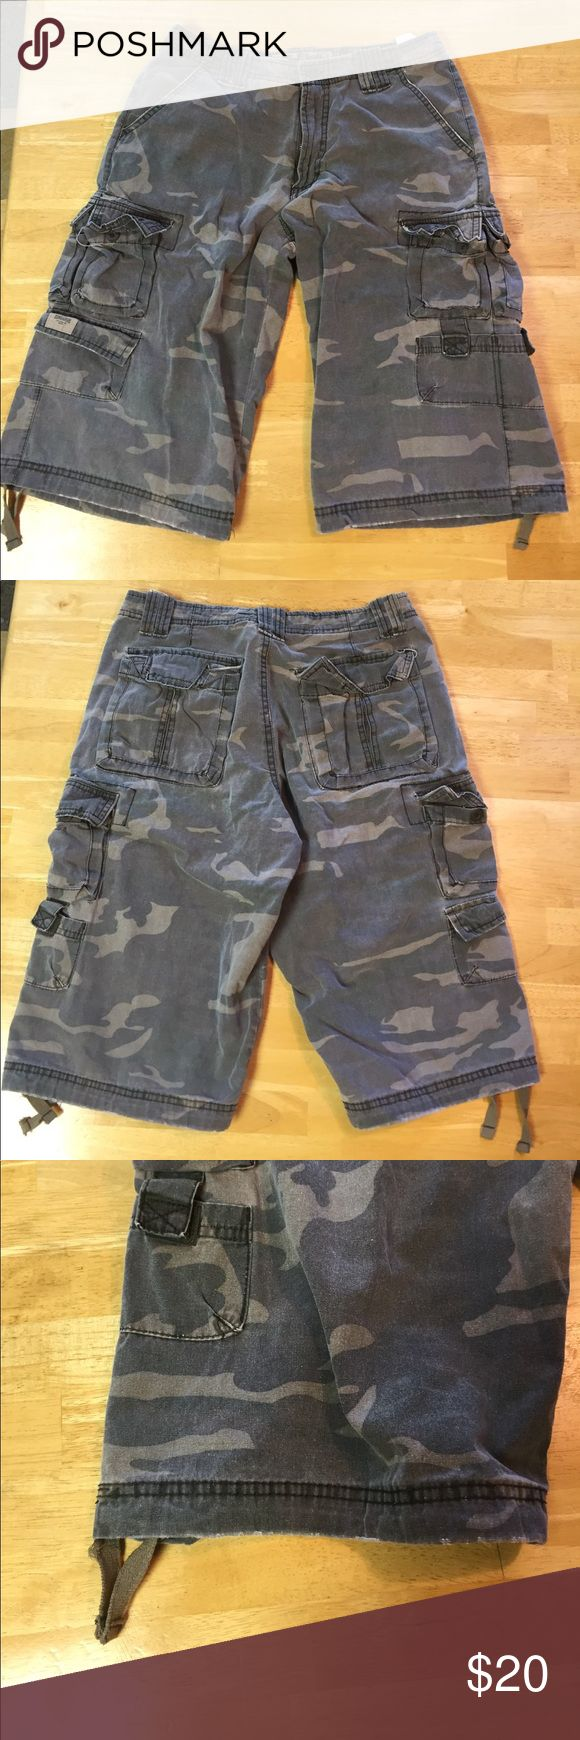 """Lee Dungarees Men's camouflage cargo shorts Lee Dungarees Men's camouflage cargo shorts      Size 29. 13.5"""" inseam. Very good condition. Smokefree home Lee Shorts Cargo"""